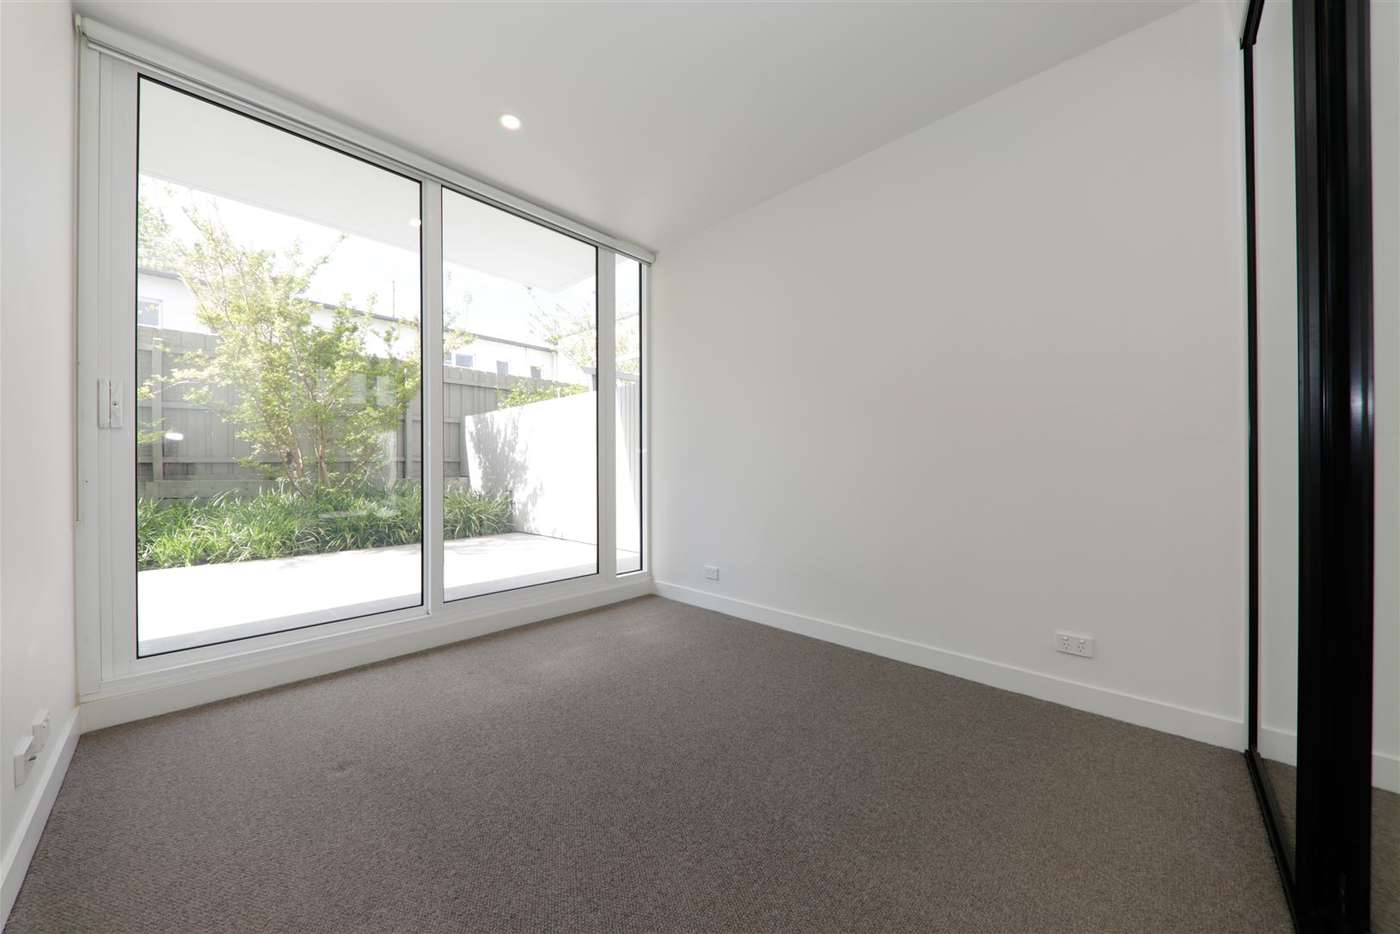 Sixth view of Homely apartment listing, G20/209 Bay Streeet, Brighton VIC 3186